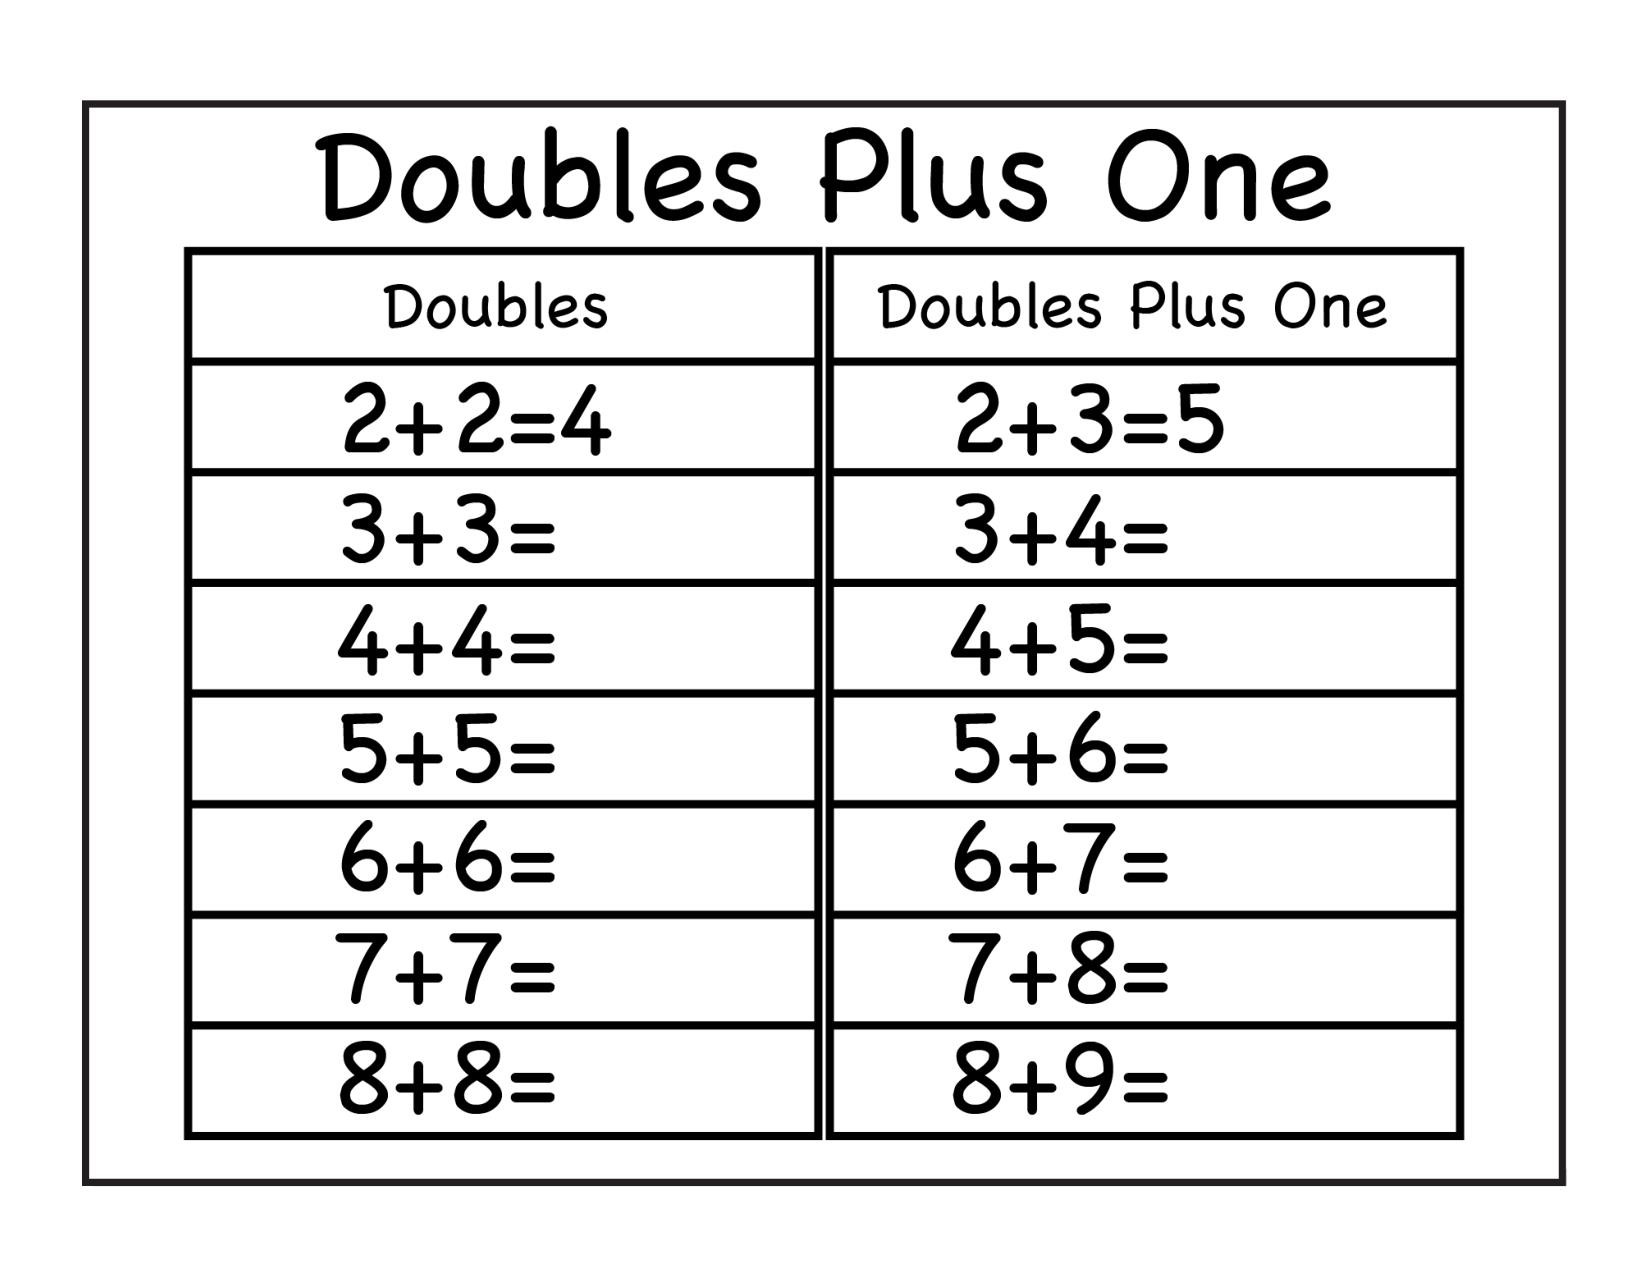 30 Doubles Plus One Worksheet